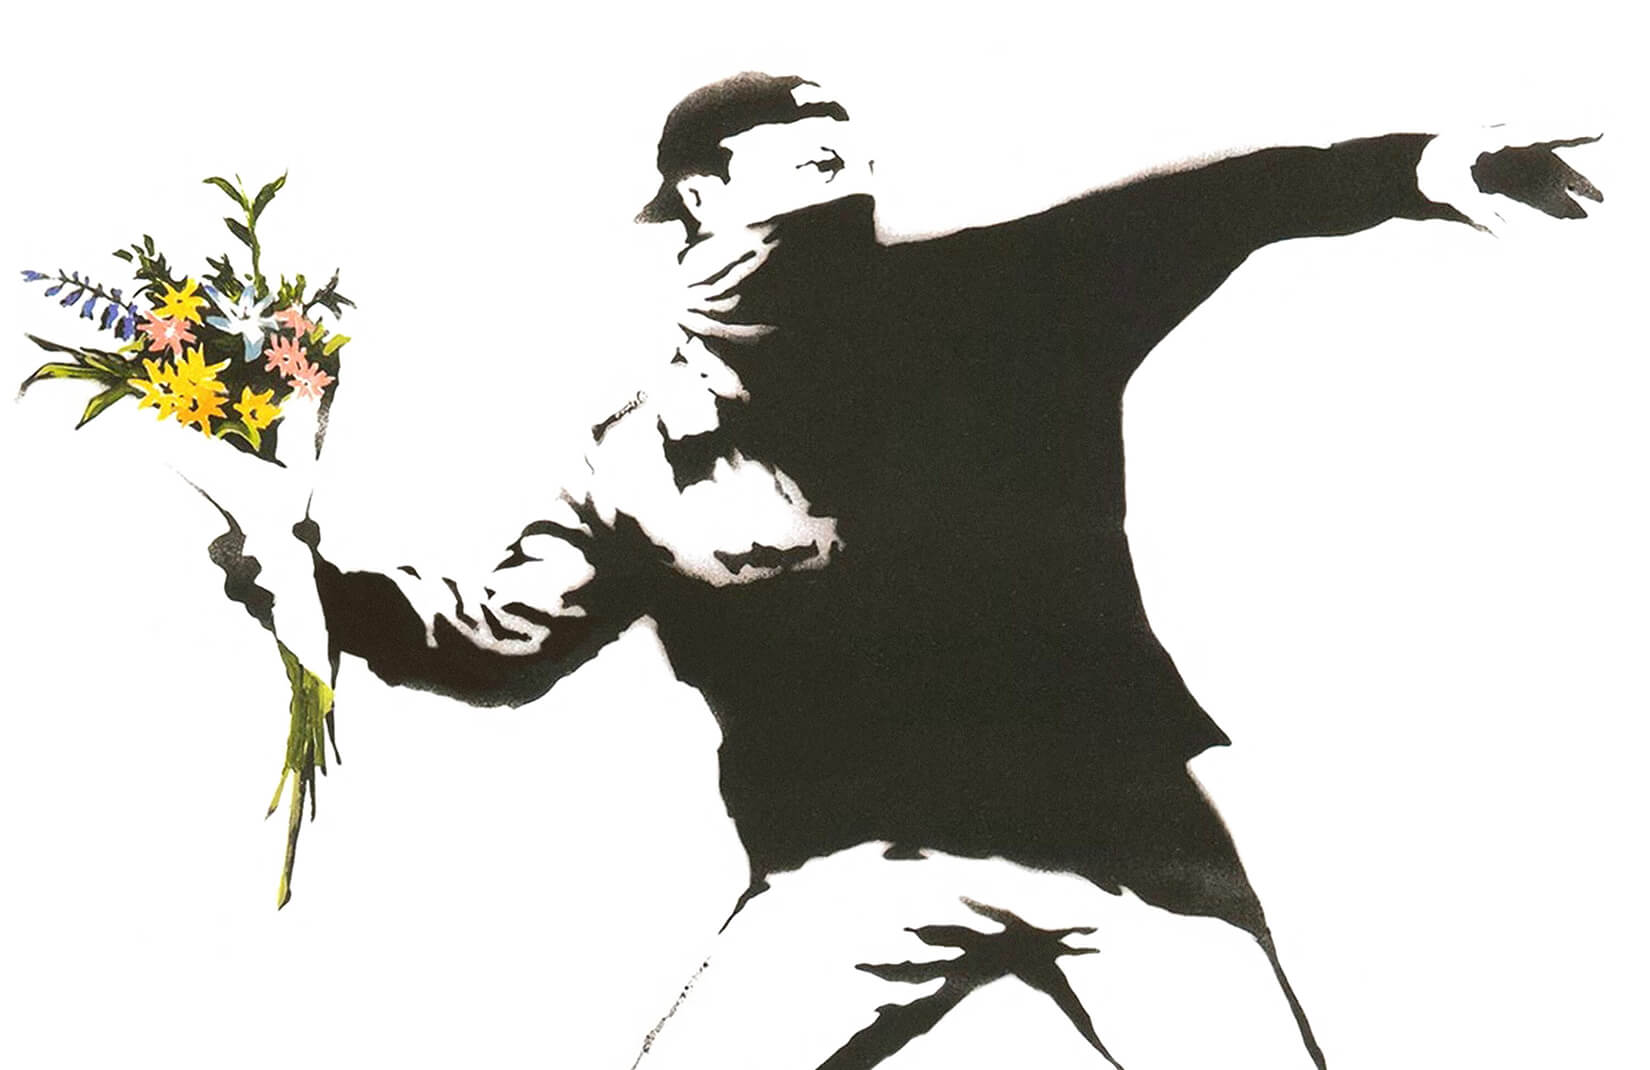 flowers banksy graffiti plain